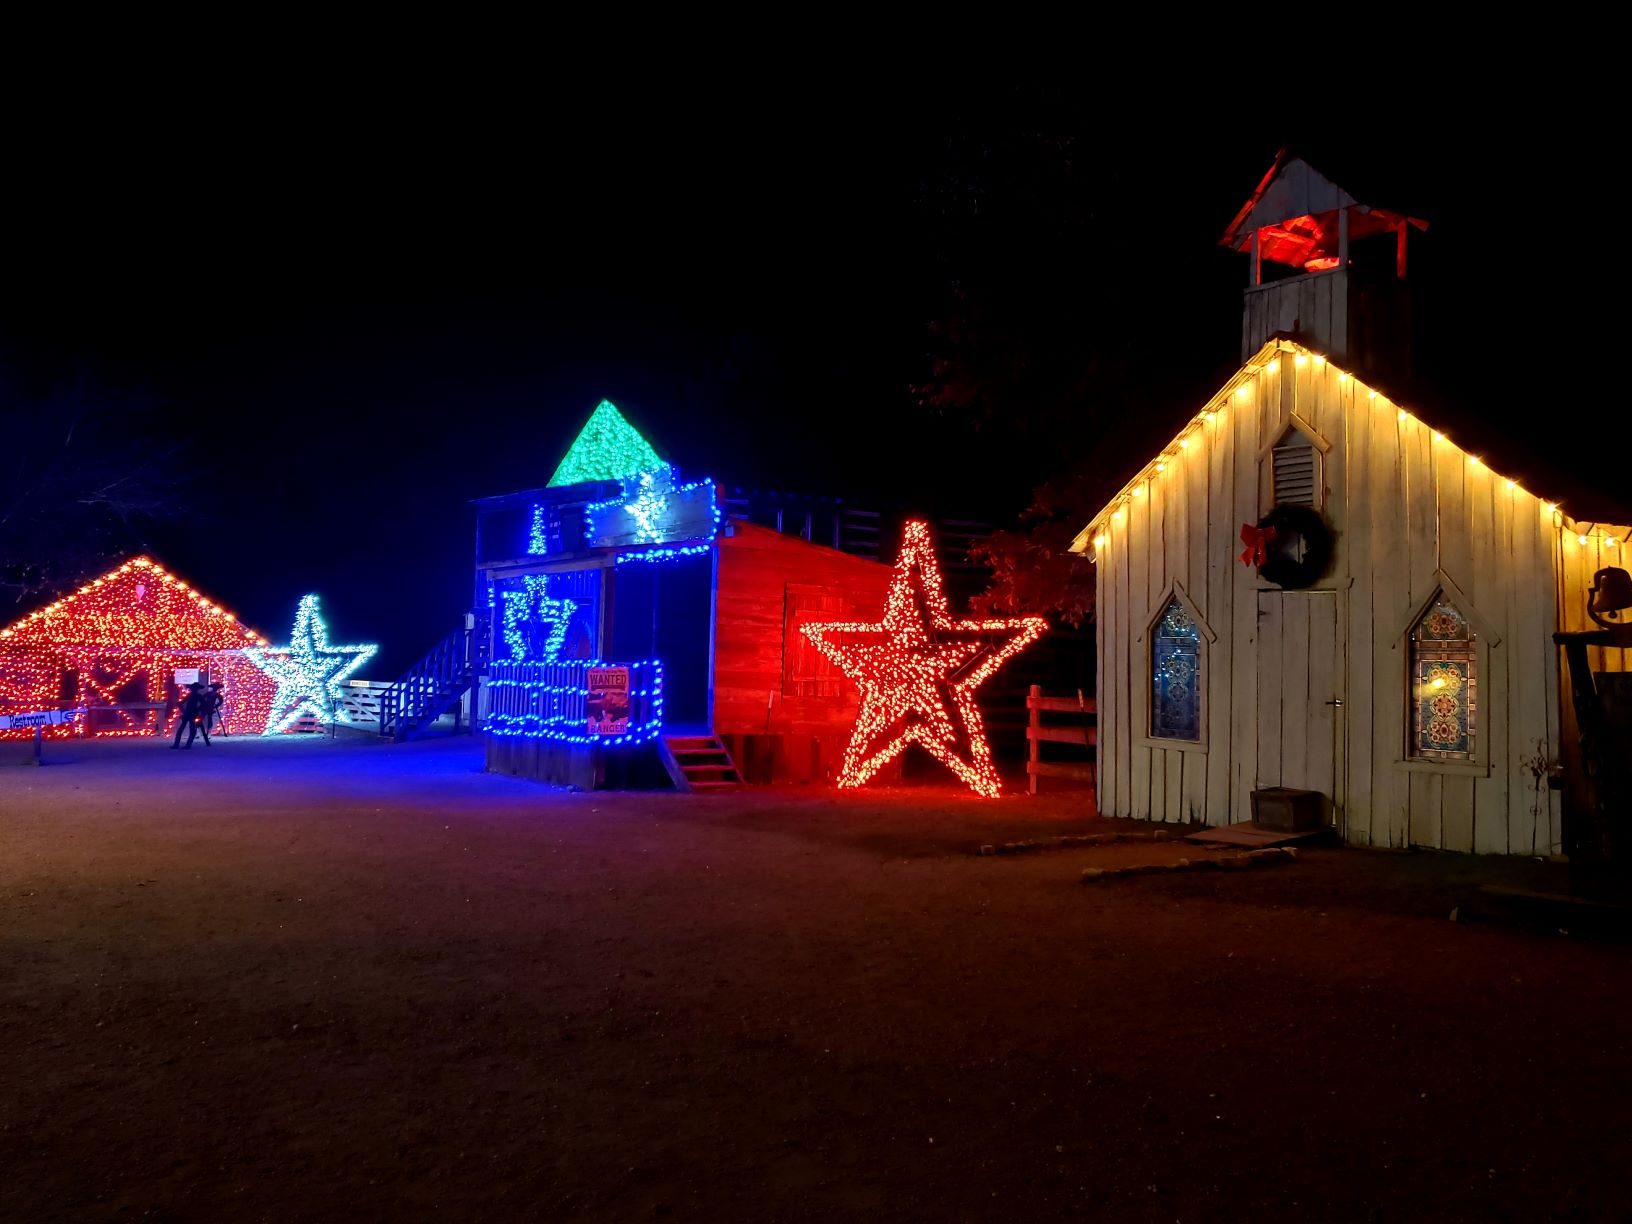 The%20Stars%20at%20Night%20are%20Bright%20at%20Old%20West%20Christmas%20Light%20Fest%20resize